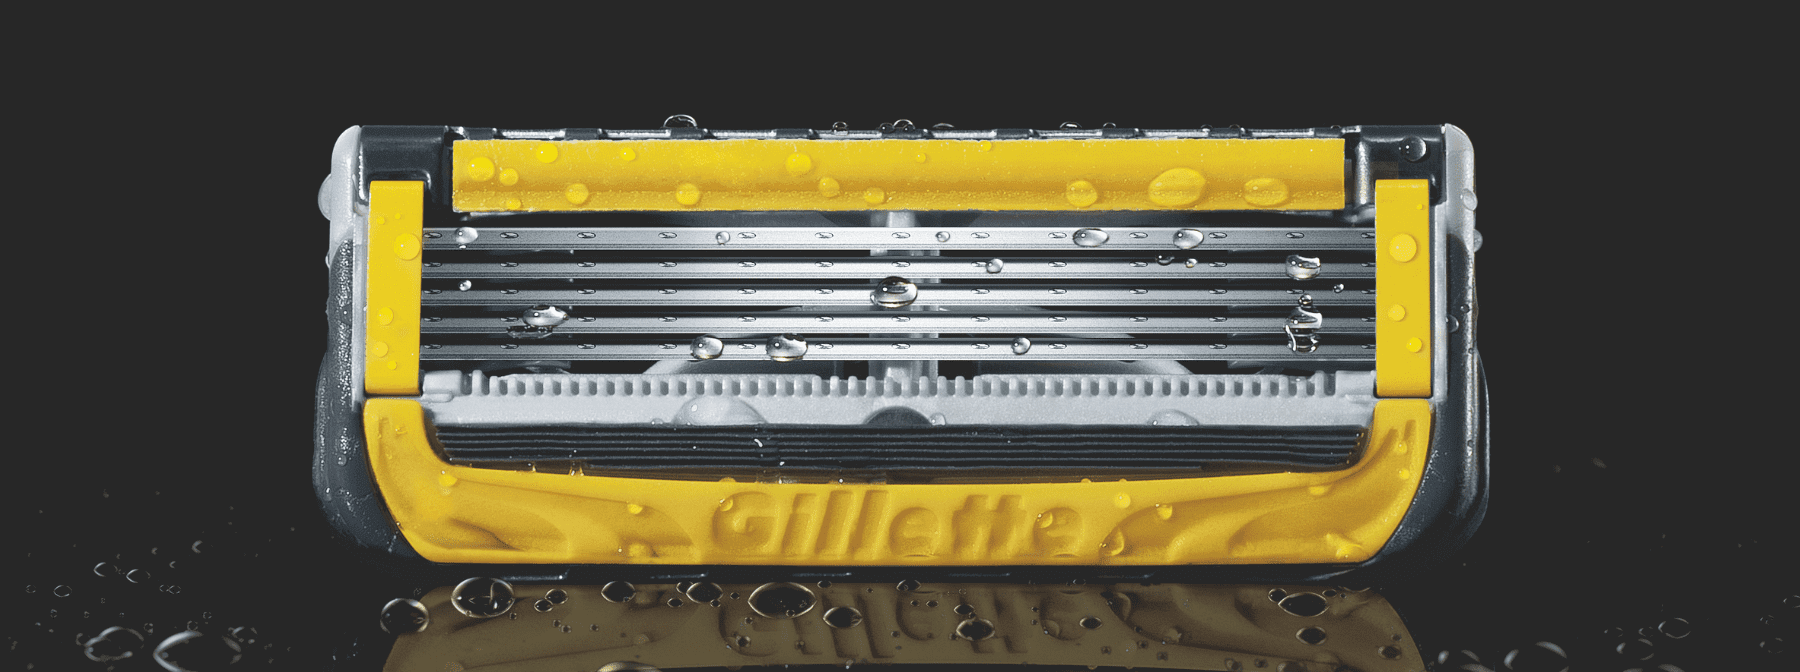 Why More Razor Blades Make a Difference: Gillette Multi-blade Razors